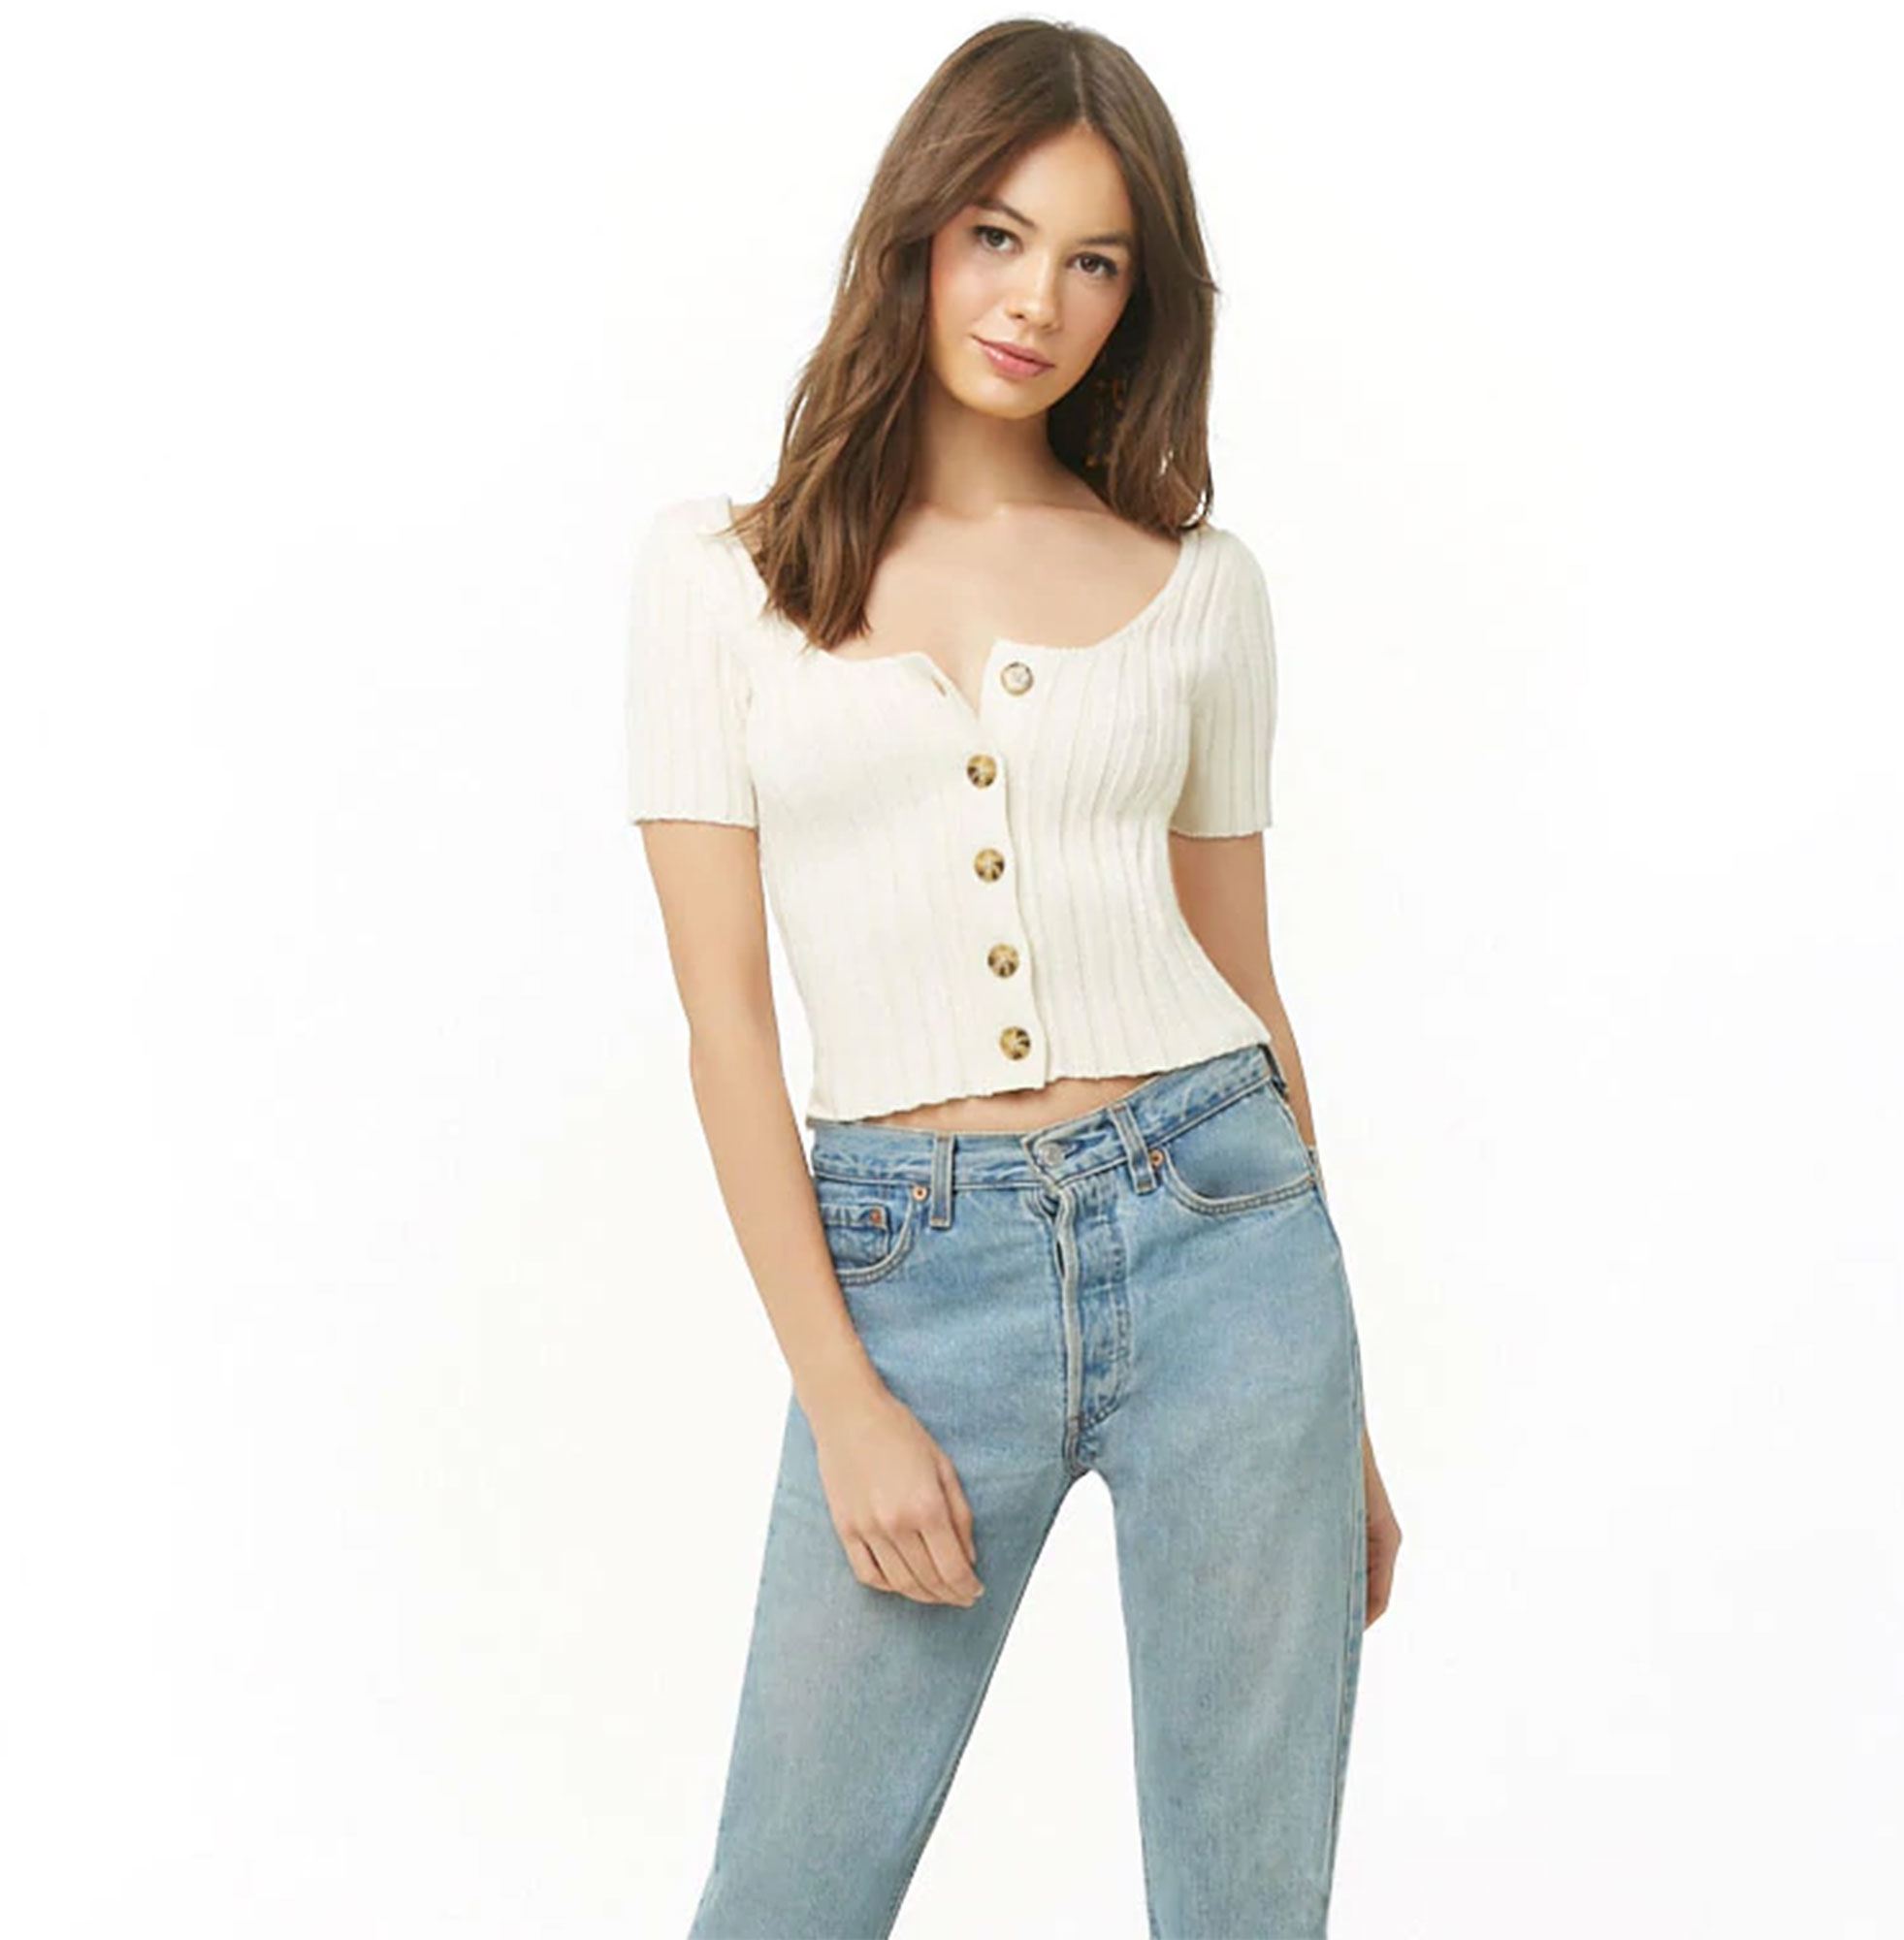 Kendal Jenner Is Bringing Back the Cropped Cardigan ‹ and So Can You - Short sleeves, a scoop neck and a wide-pane ribbing make this sweater-shirt perfect for summer. $19.90, forever21.com